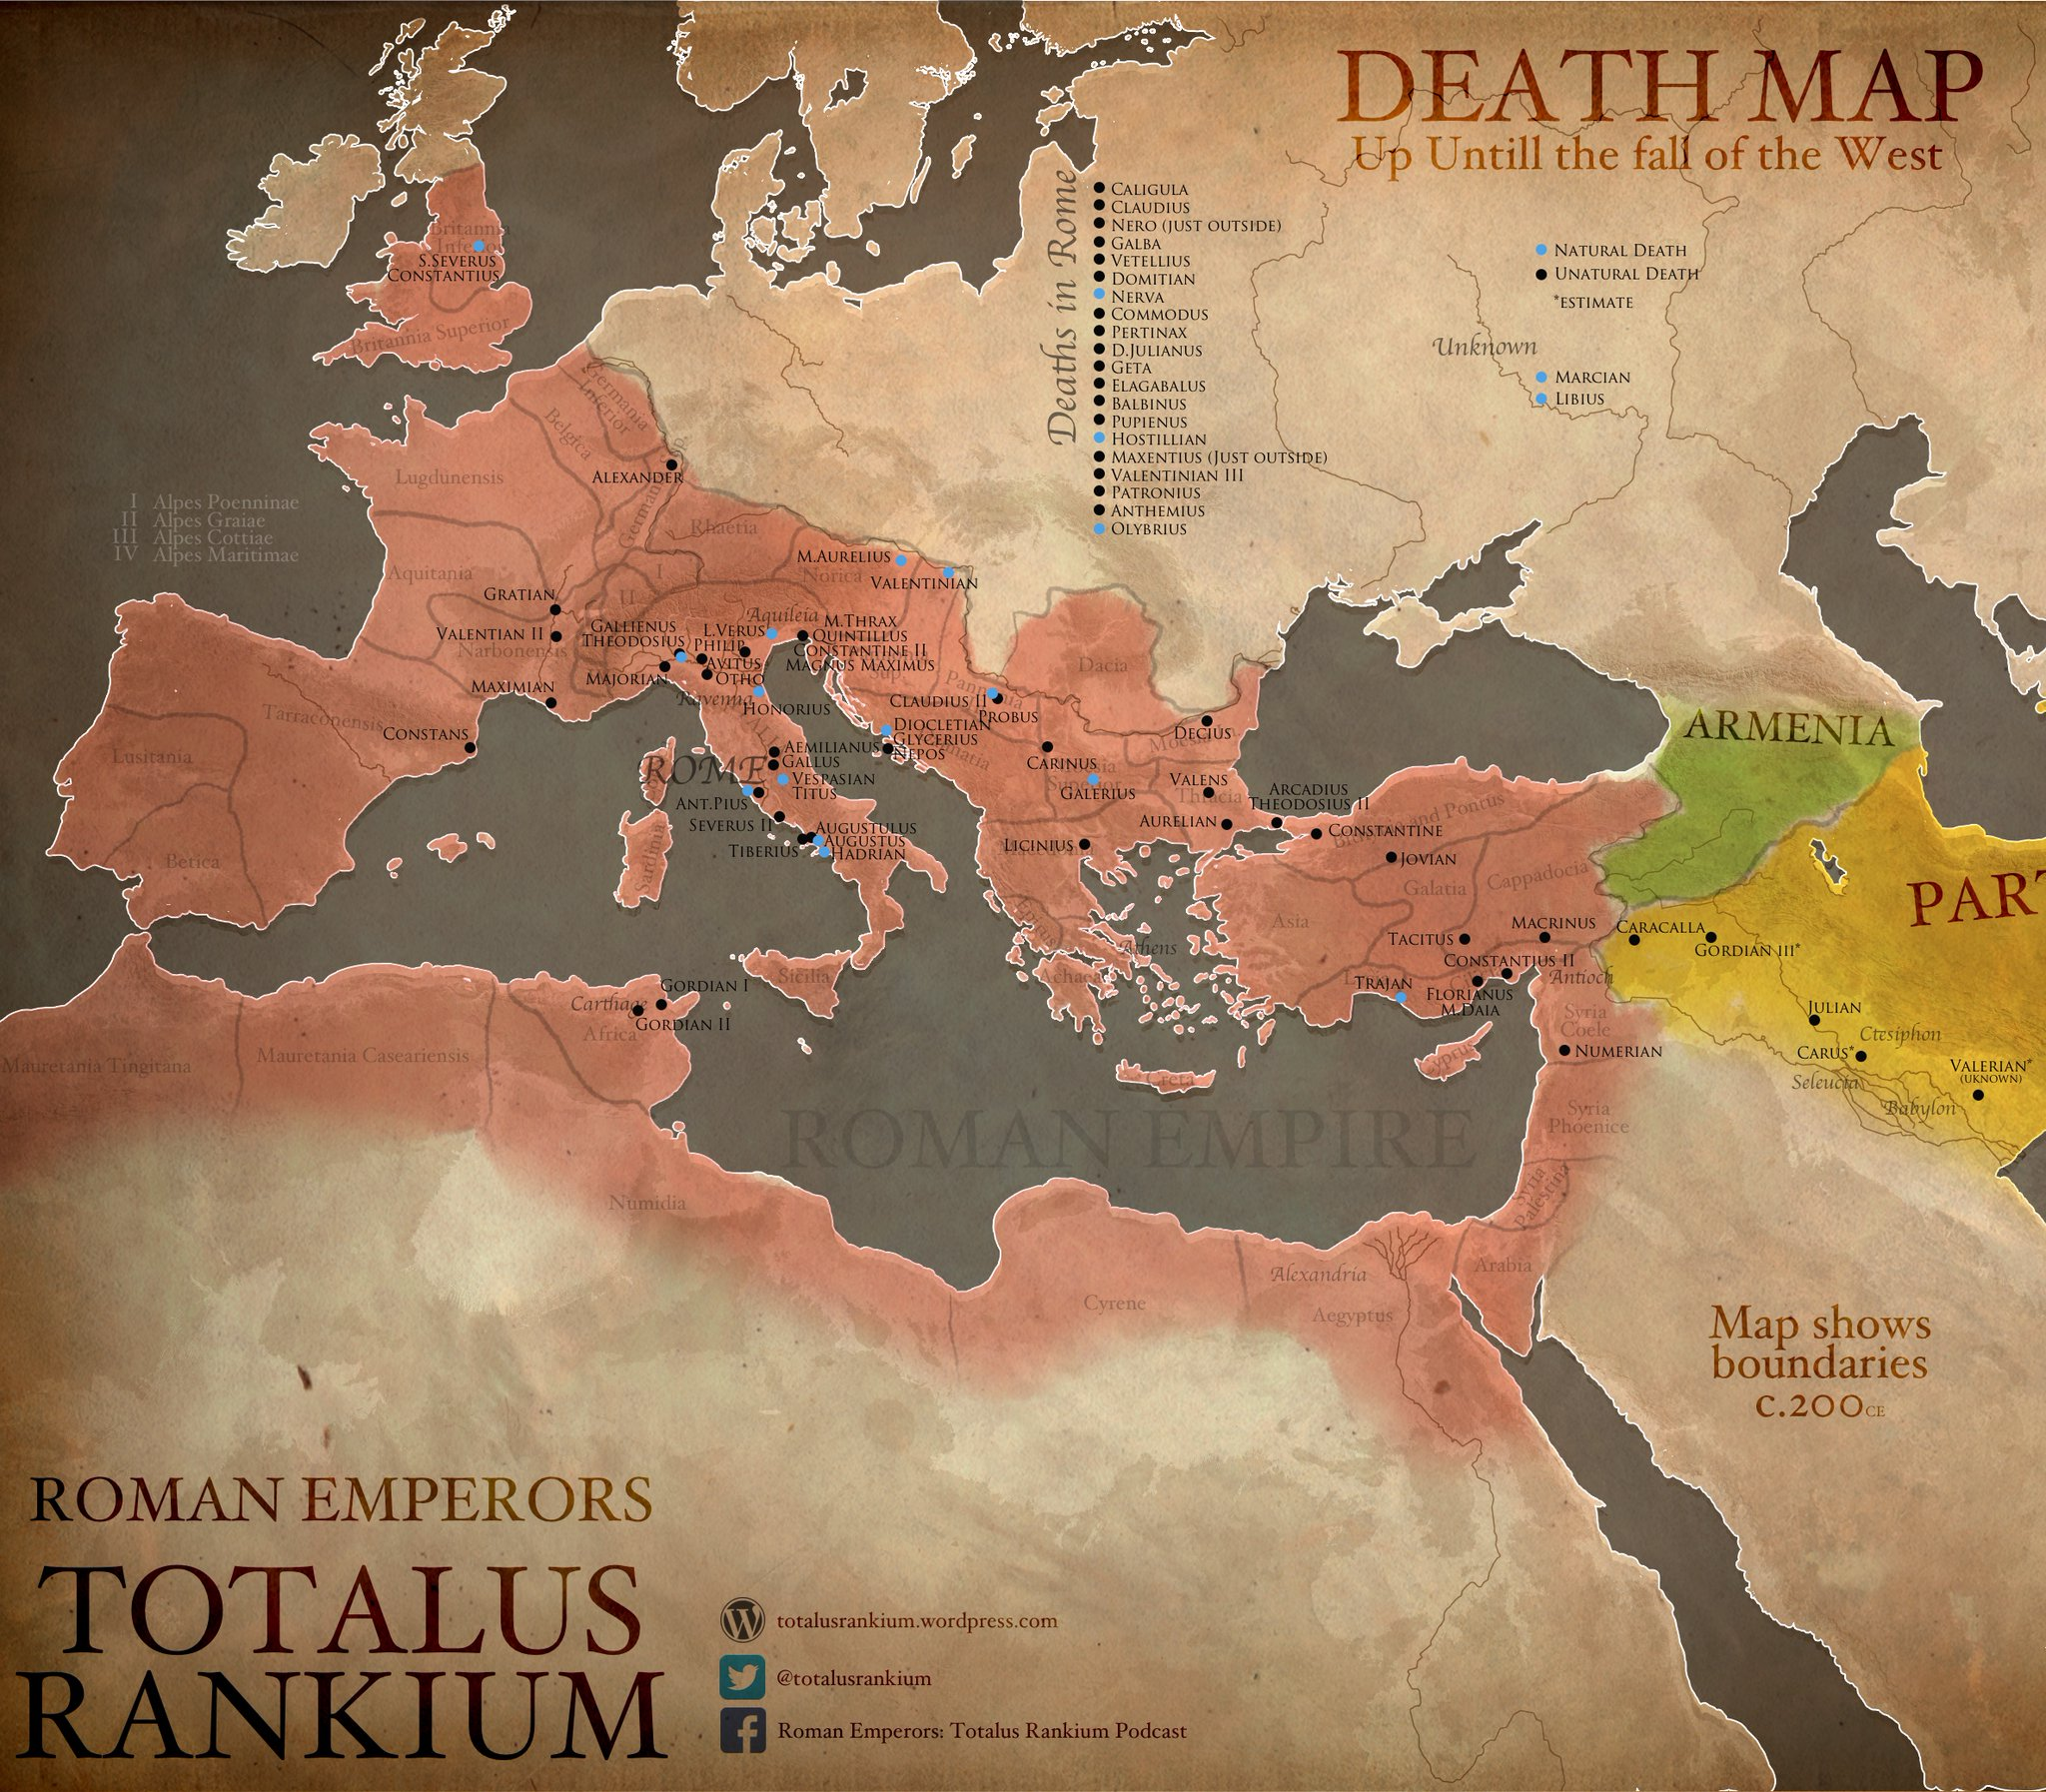 Veni vidi gone a death map of roman emperors big think on the roman empire its leaders and their deaths check out the totalus rankium twitter feed and podcast causes of death graph found here on reddit gumiabroncs Choice Image